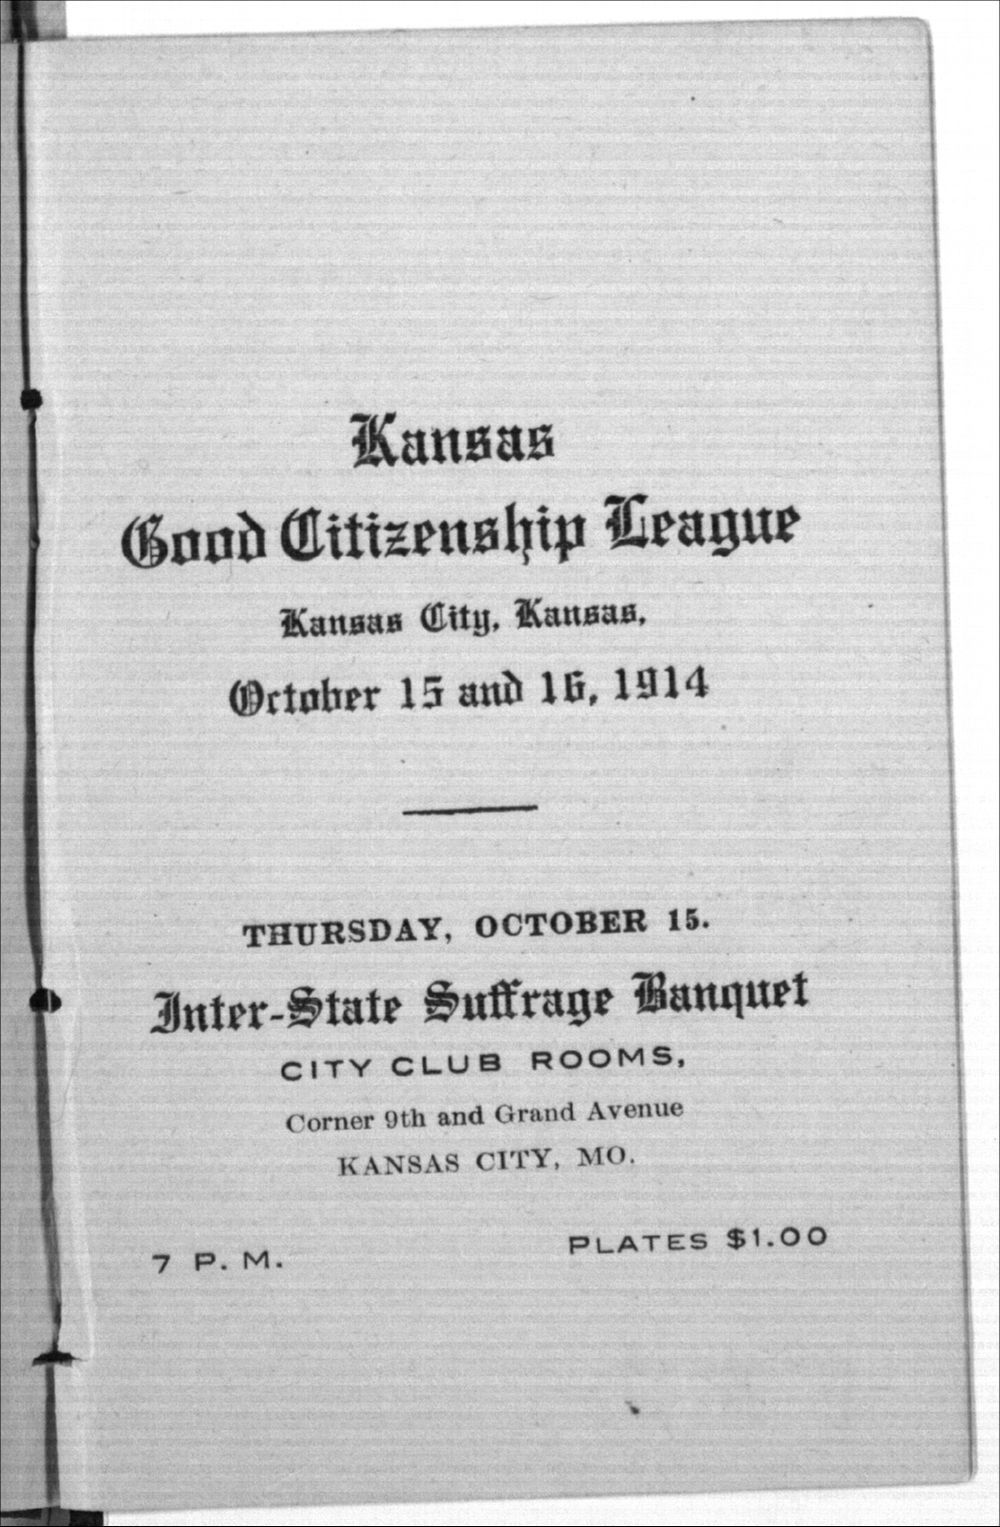 Kansas Good Citizenship League, Inter-State Suffrage Banquet - 2